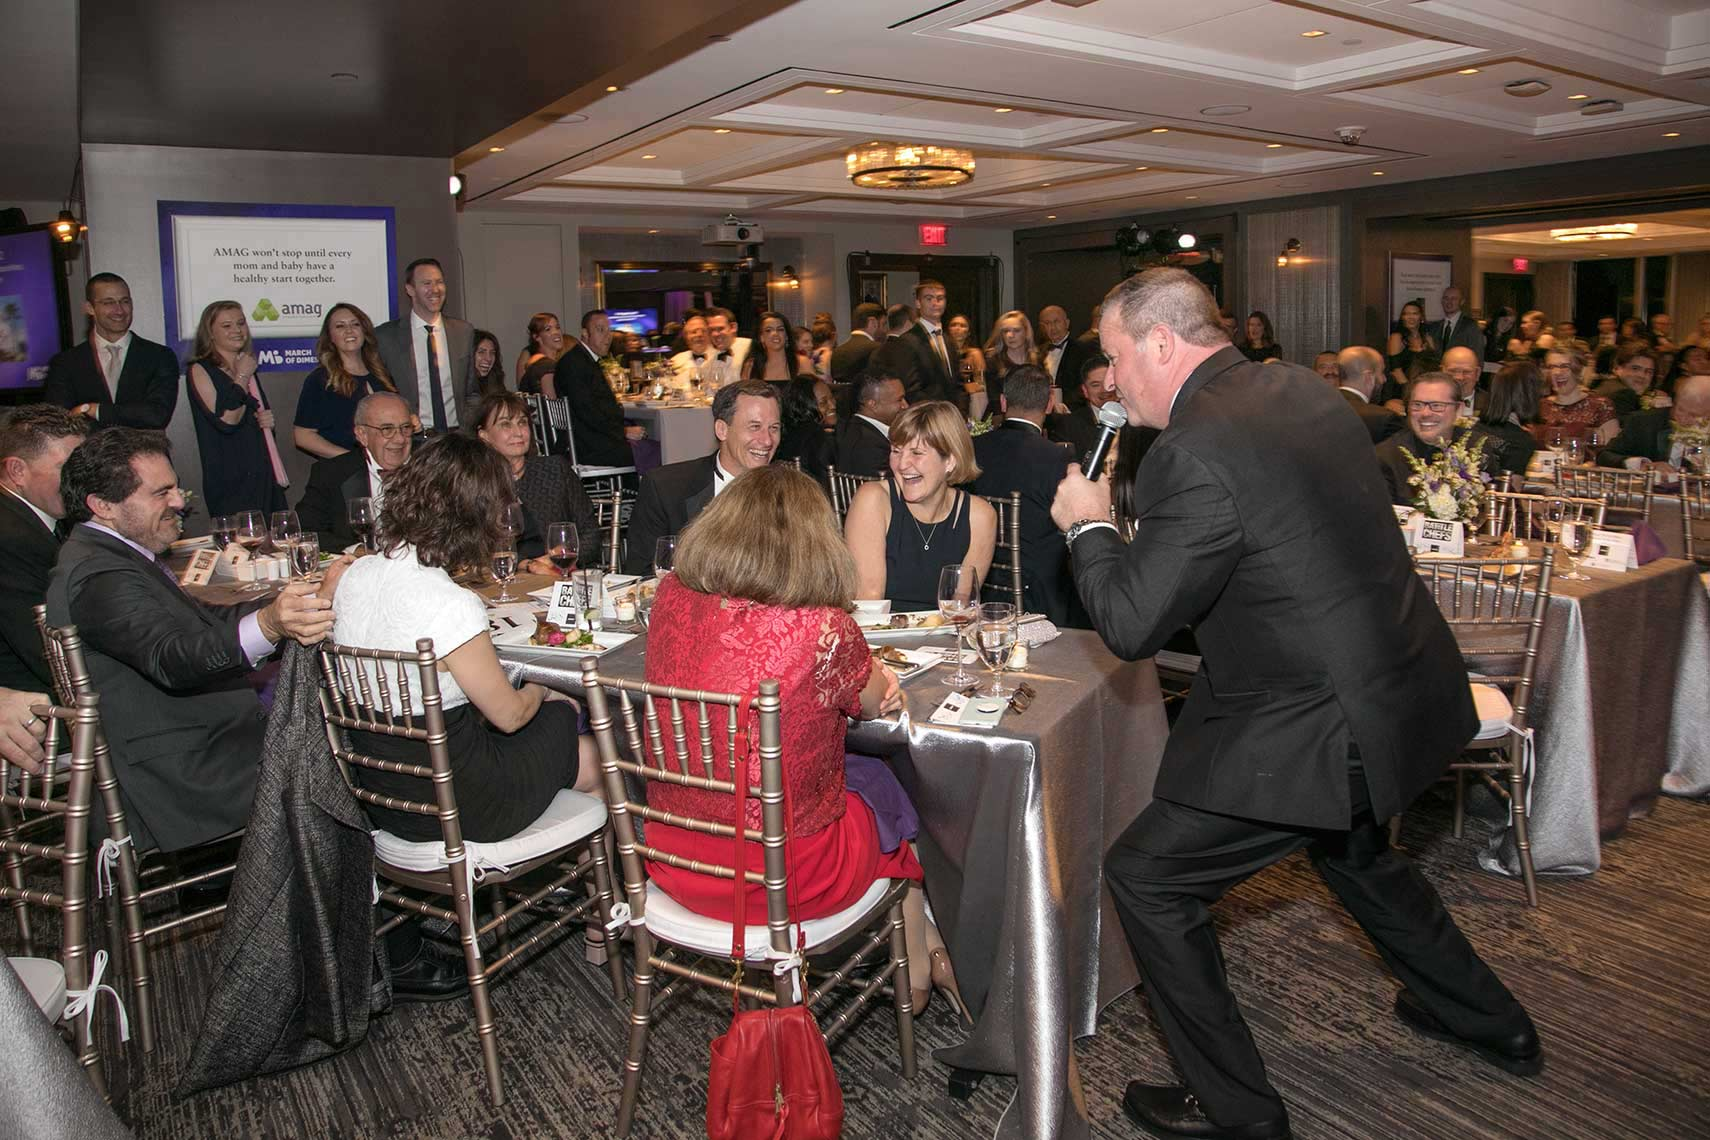 027-Auctioneer-working-the-room-at-the-Black-Ties-for-Babies-fundraising-gala-for-the-March-of-Dimes